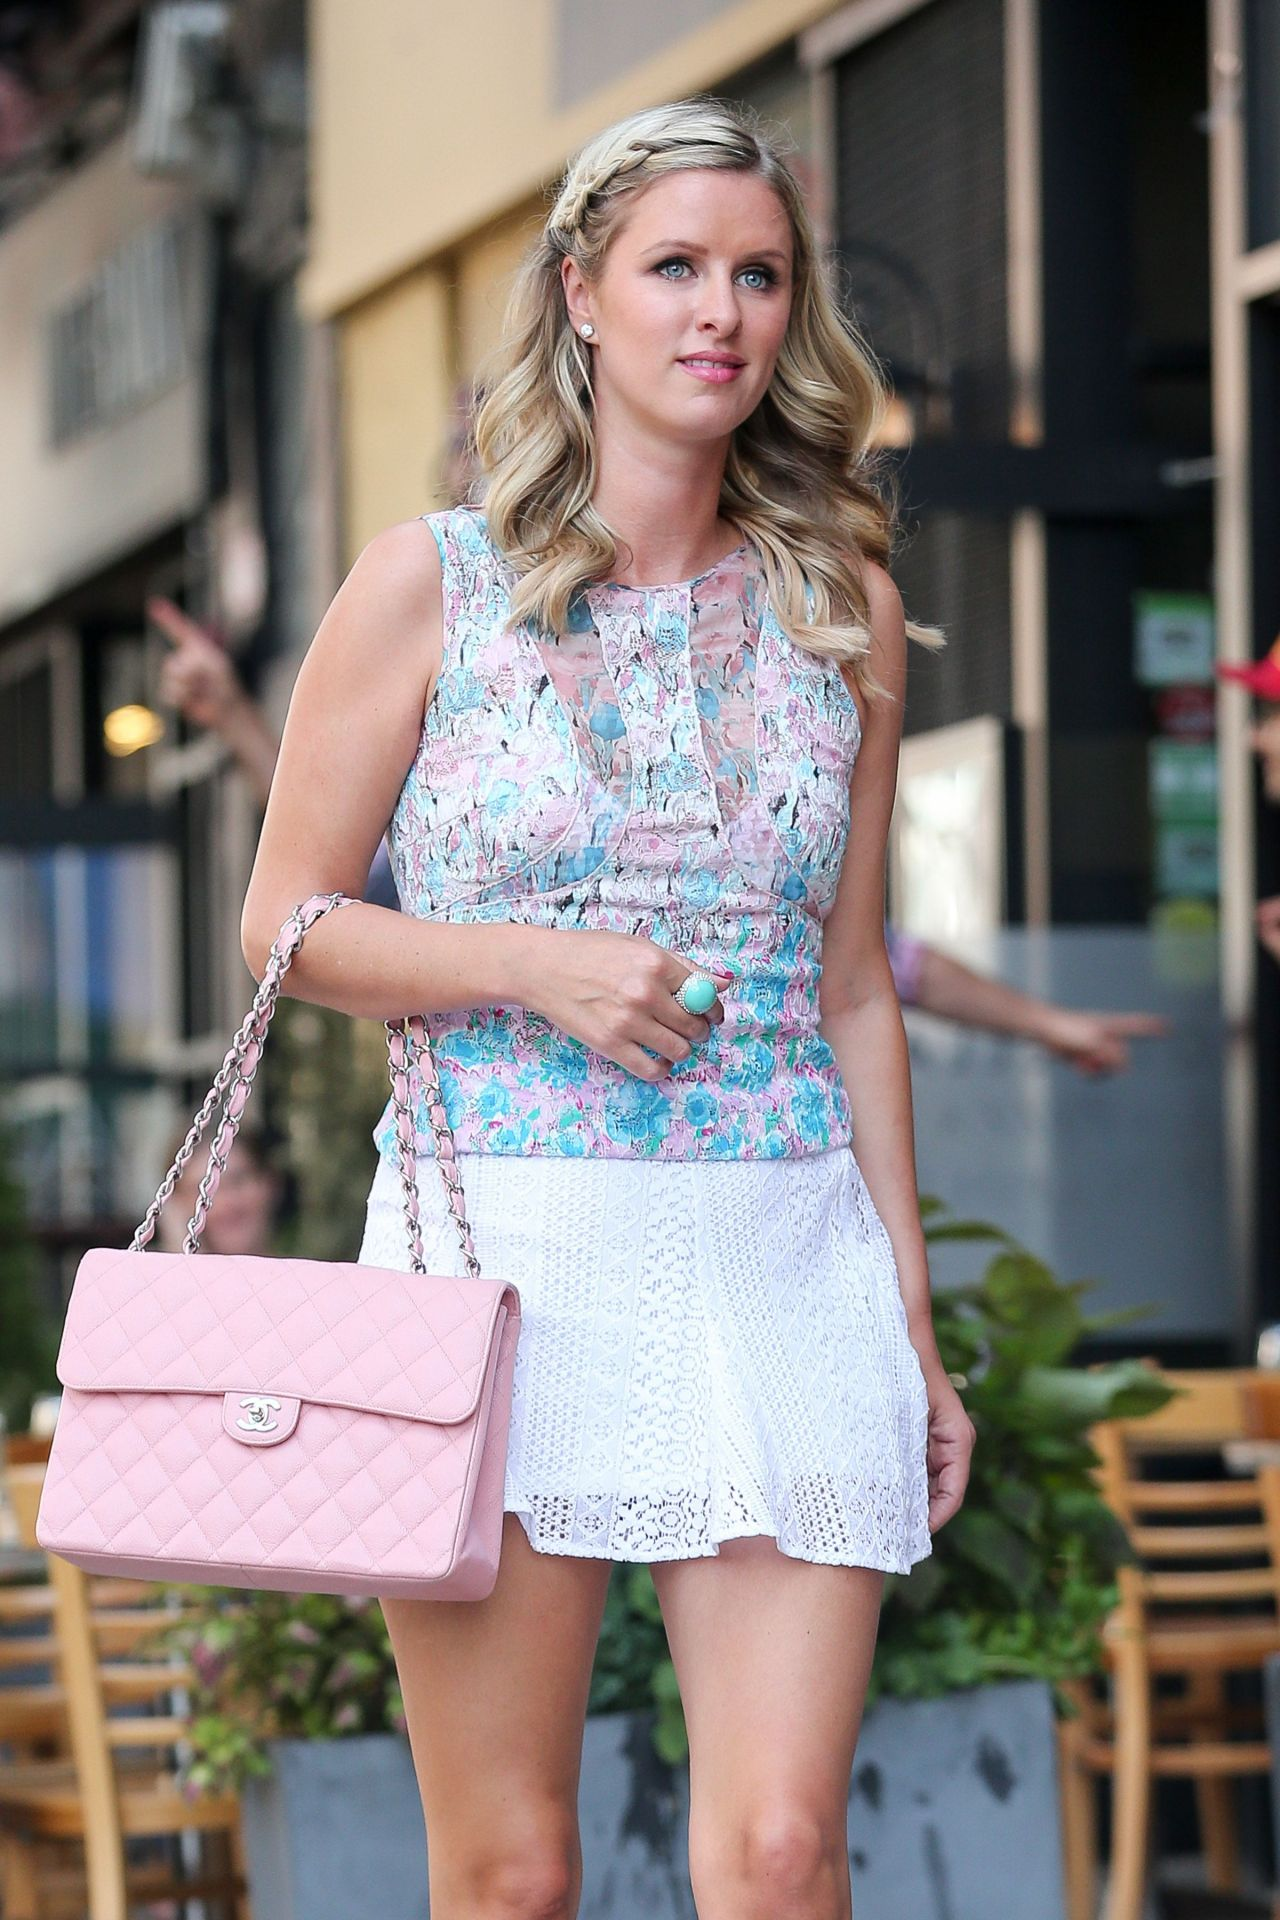 Nicky Hilton in Mini Skirt - Out in New York City - July 2014